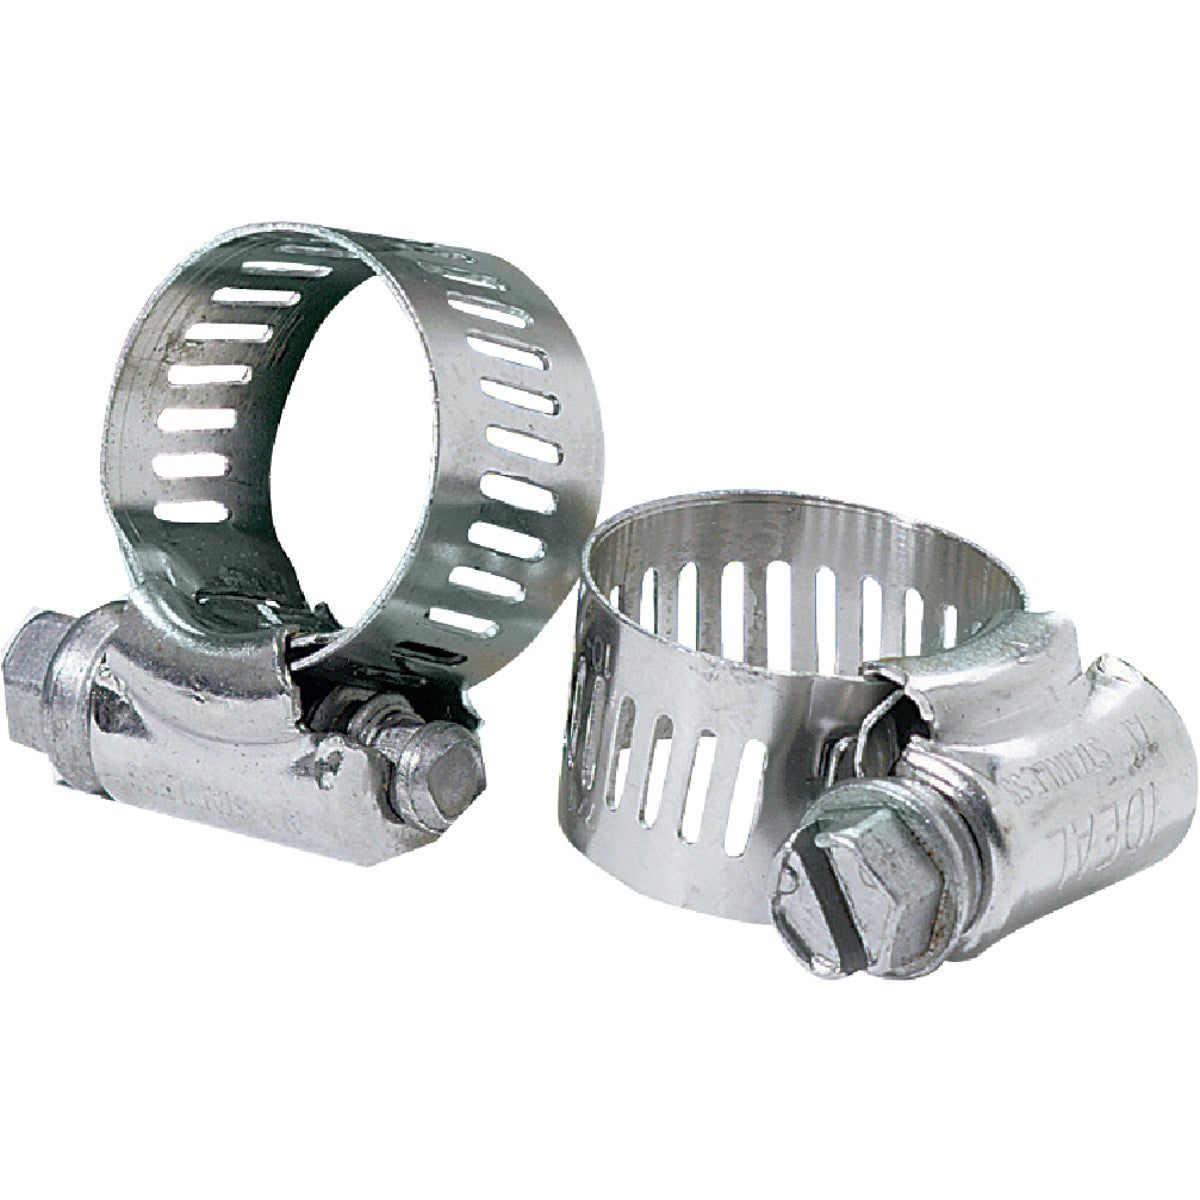 "1-1/4"" TO 2-1/4"" CLAMP"